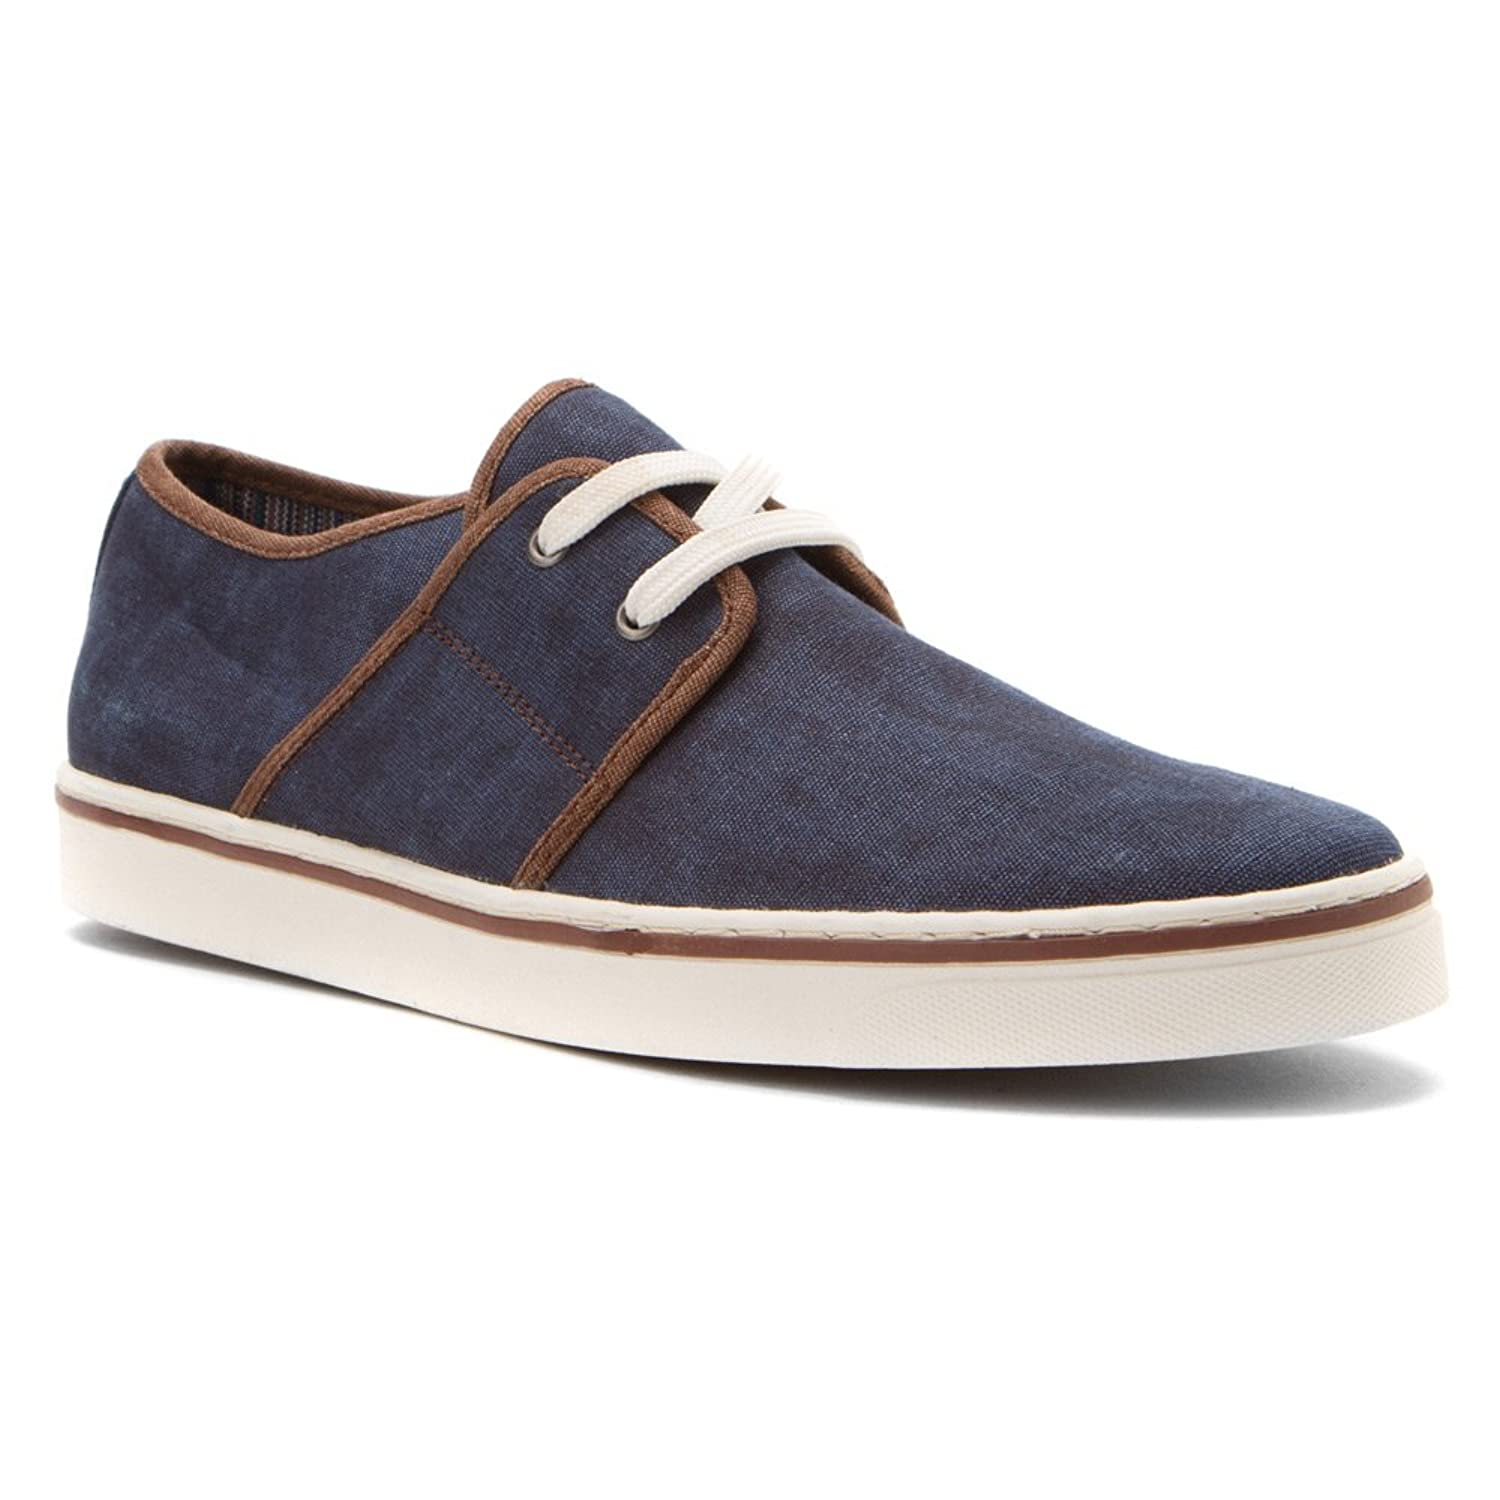 Vionic bryson canvas sneakers